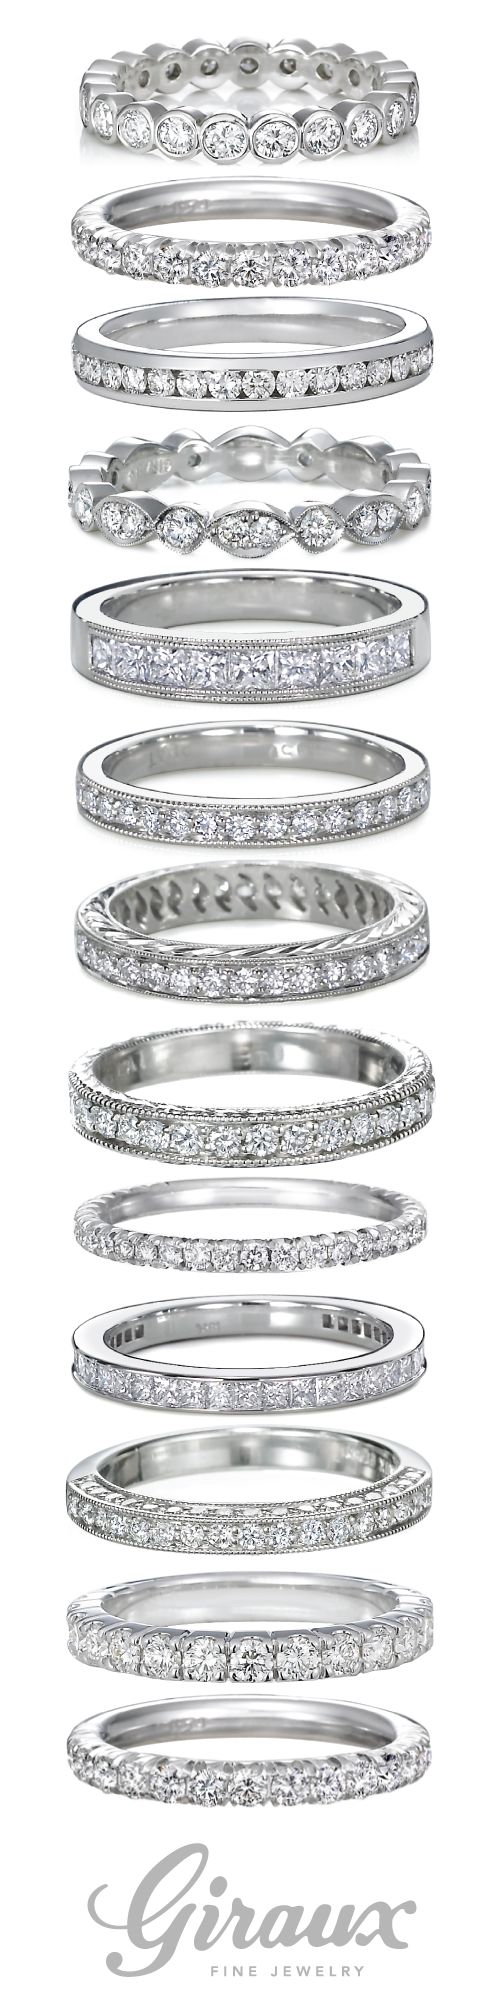 diamond wedding bands wedding ring diamond Diamond Ladies Wedding Bands come in so many shapes and styles Giraux Fine Jewelry is